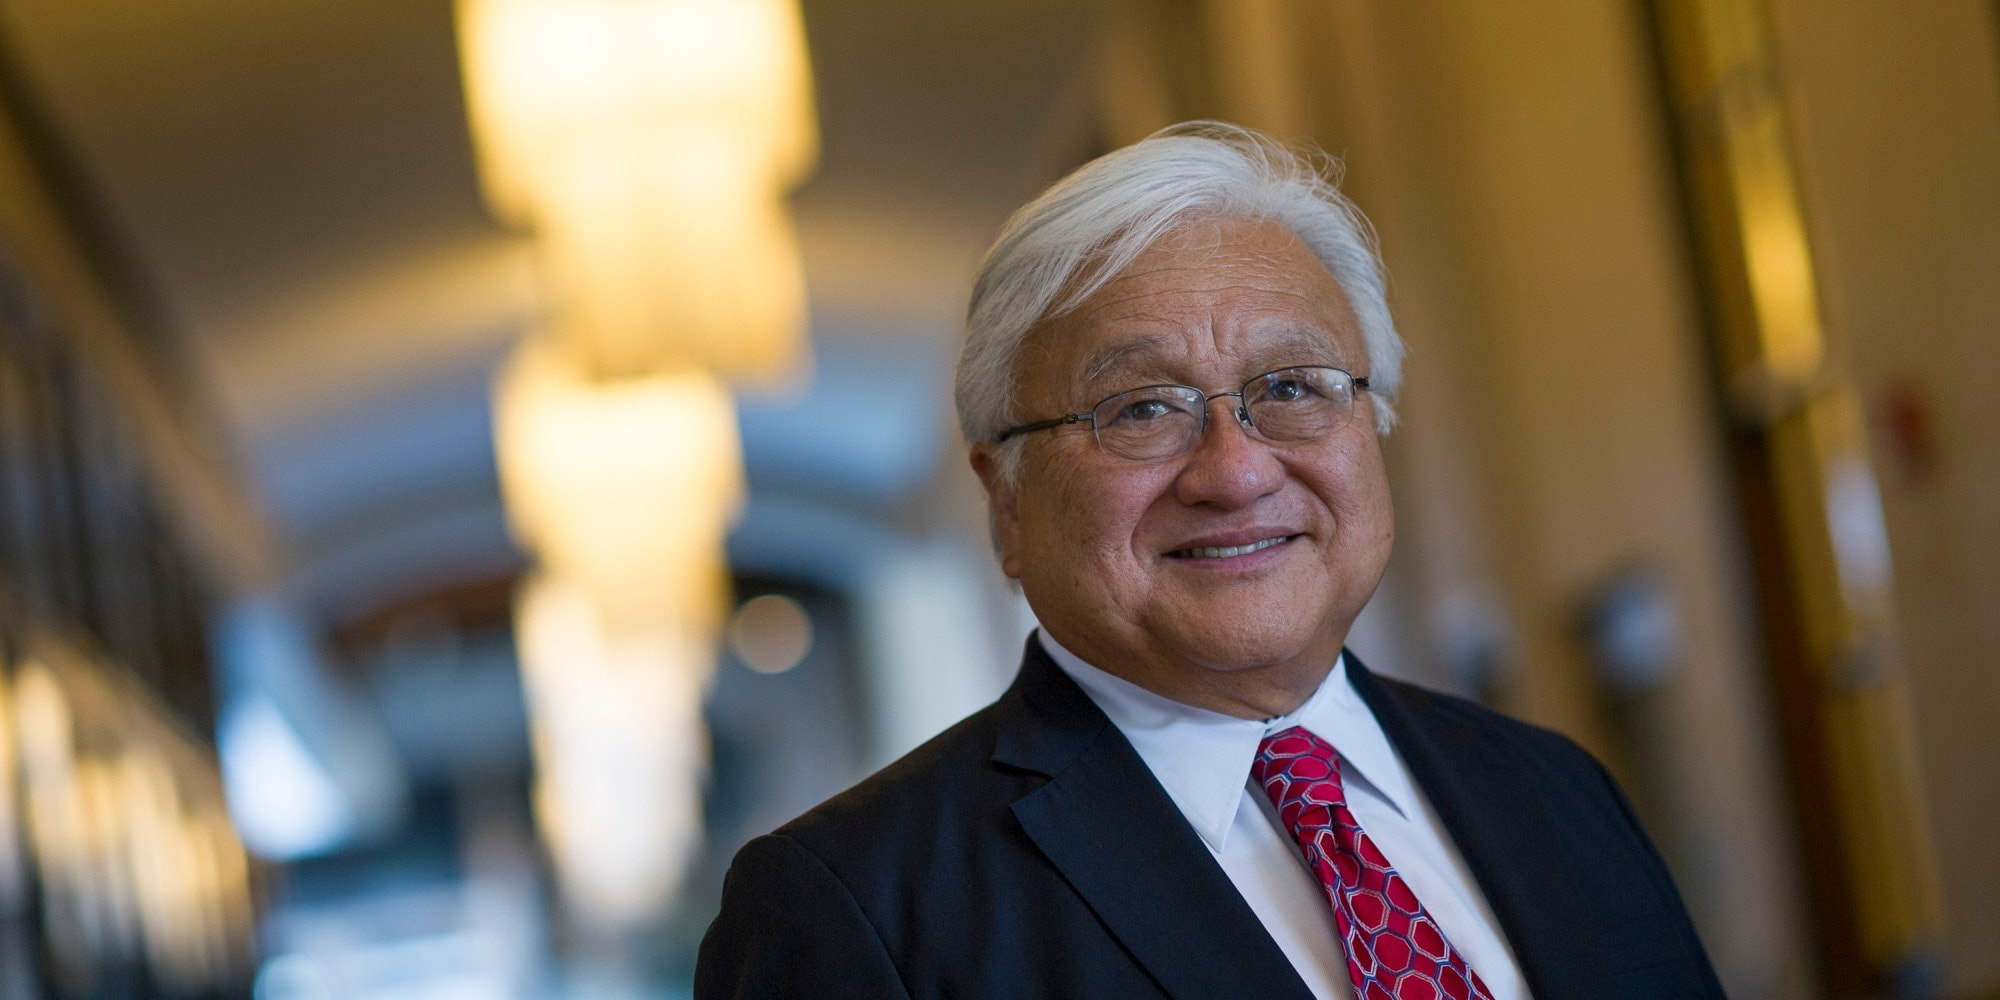 Rep. Mike Honda, (D-CA), wants to ban the sale of certain kinds of body armor, 80 percent lowers, and parts kits in an effort to stop gun crime. (Photo: David Paul Morris/Businessweek)